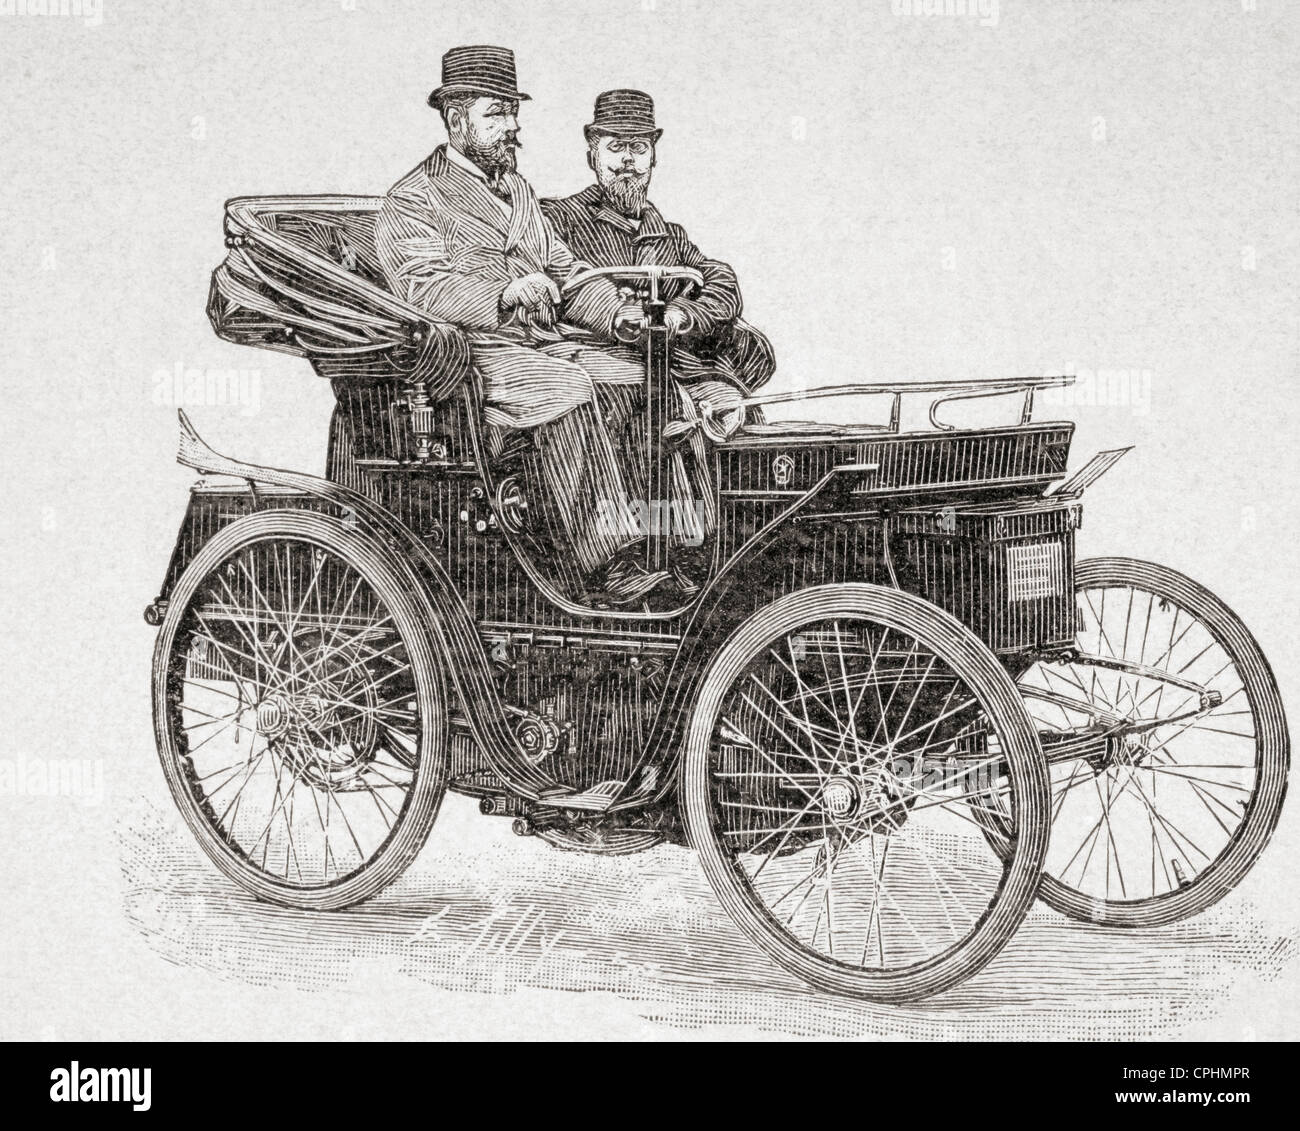 An early Rochet-Schneider motor car. From L'Illustration published 1897. - Stock Image